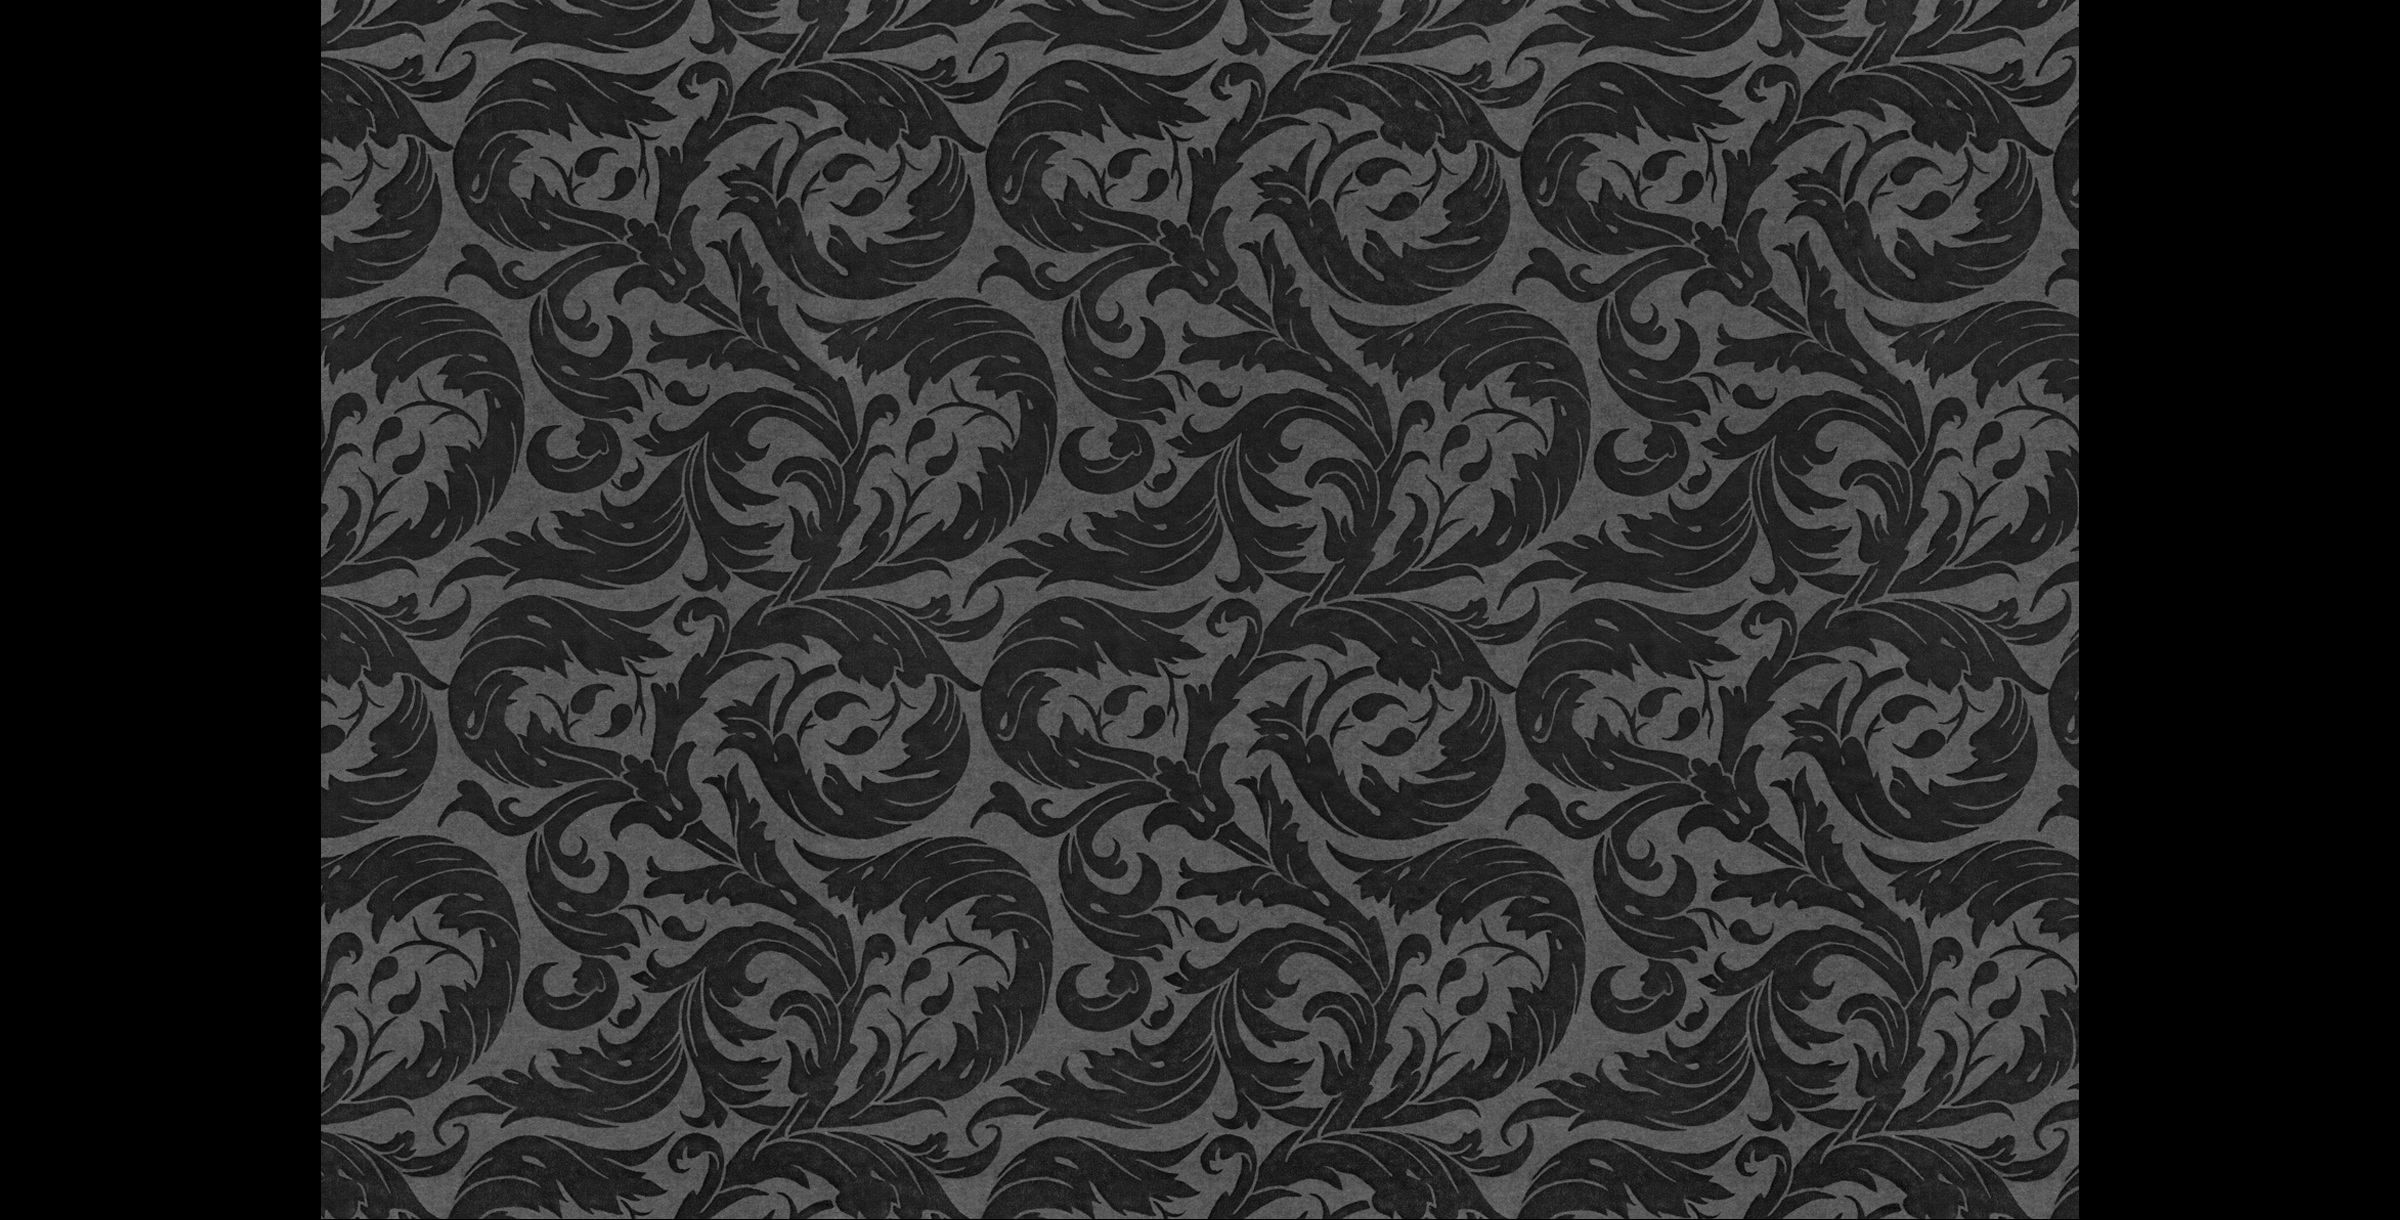 Acanthus Leaf Pattern. Journal pastedown endpapers and gift wrap.  1994. Pen and ink. Produced for Mudlark Papers, Chicago, IL.